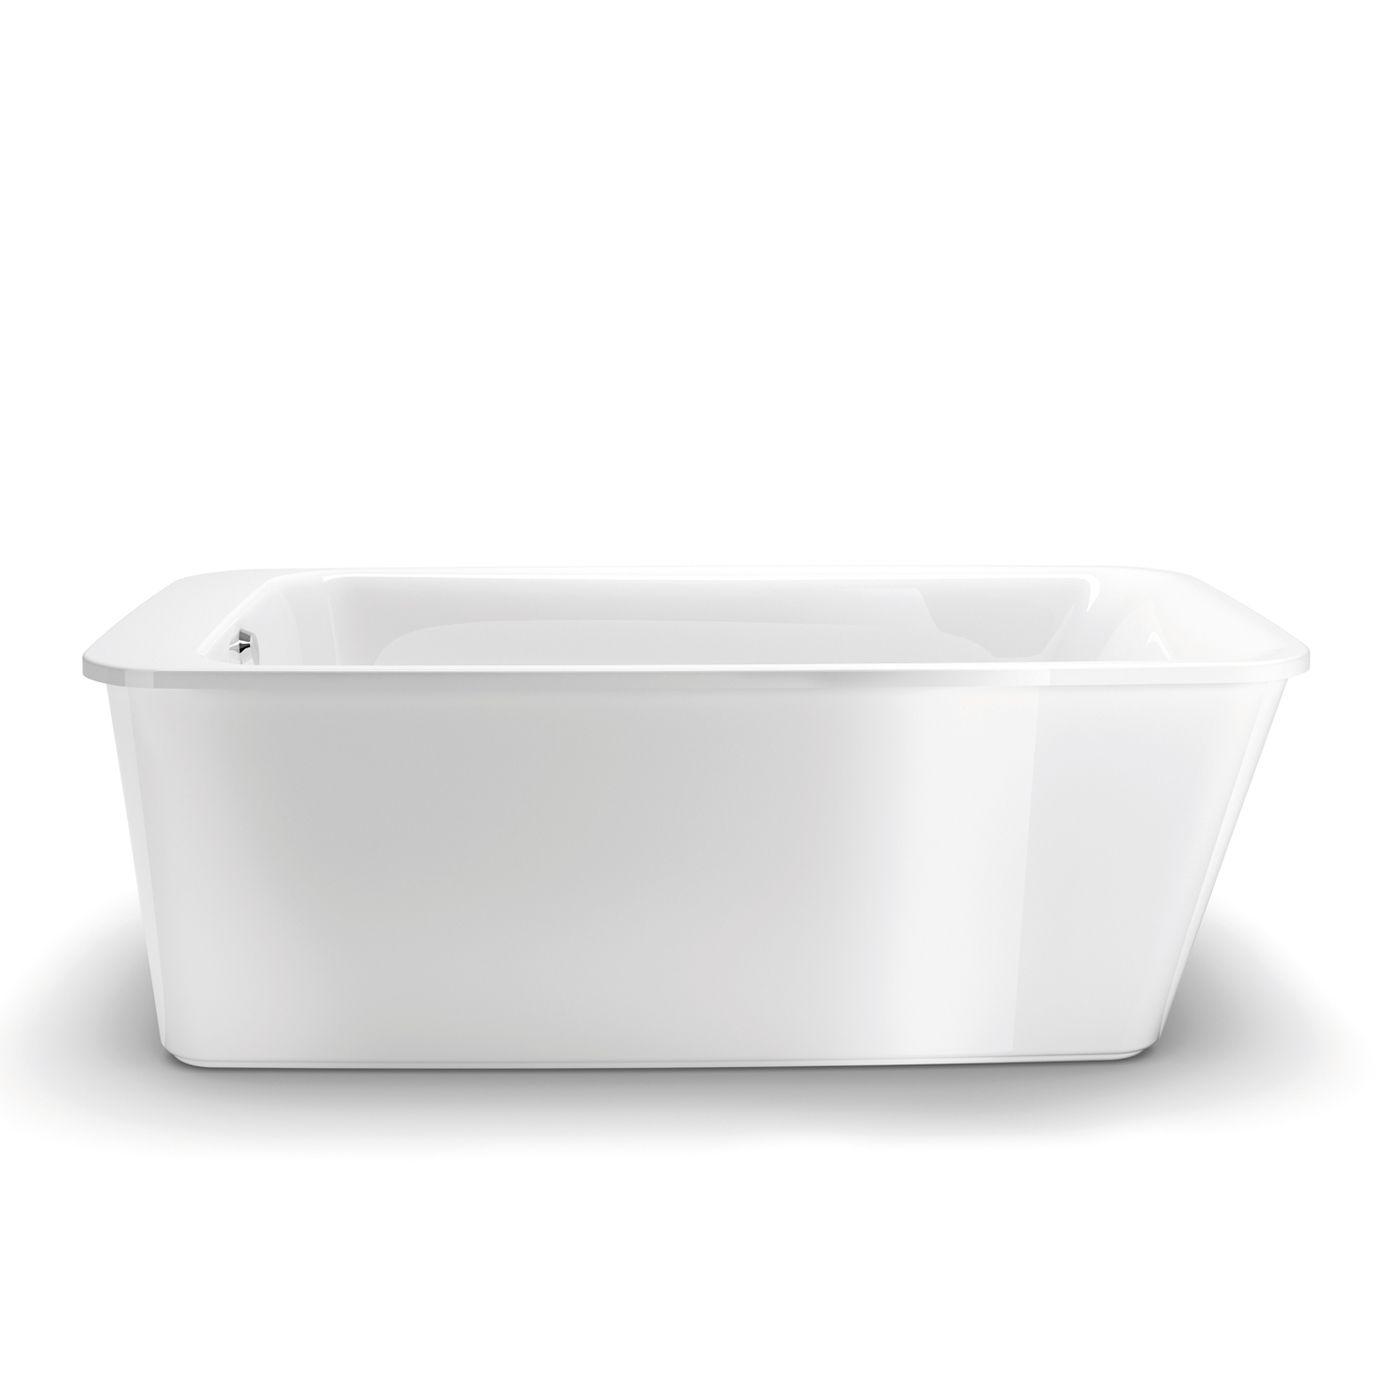 Shop Maax 105798 000 001 10 Lounge Freestanding Soaking Bathtub  Common   34 in x 60 in  Actual  22 25 in x 34 in x 64 in  at Lowe s Canada  Find o Shop Maax 105798 000 001 10 Lounge Freestanding Soaking Bathtub  . Free Standing Tub Canada. Home Design Ideas